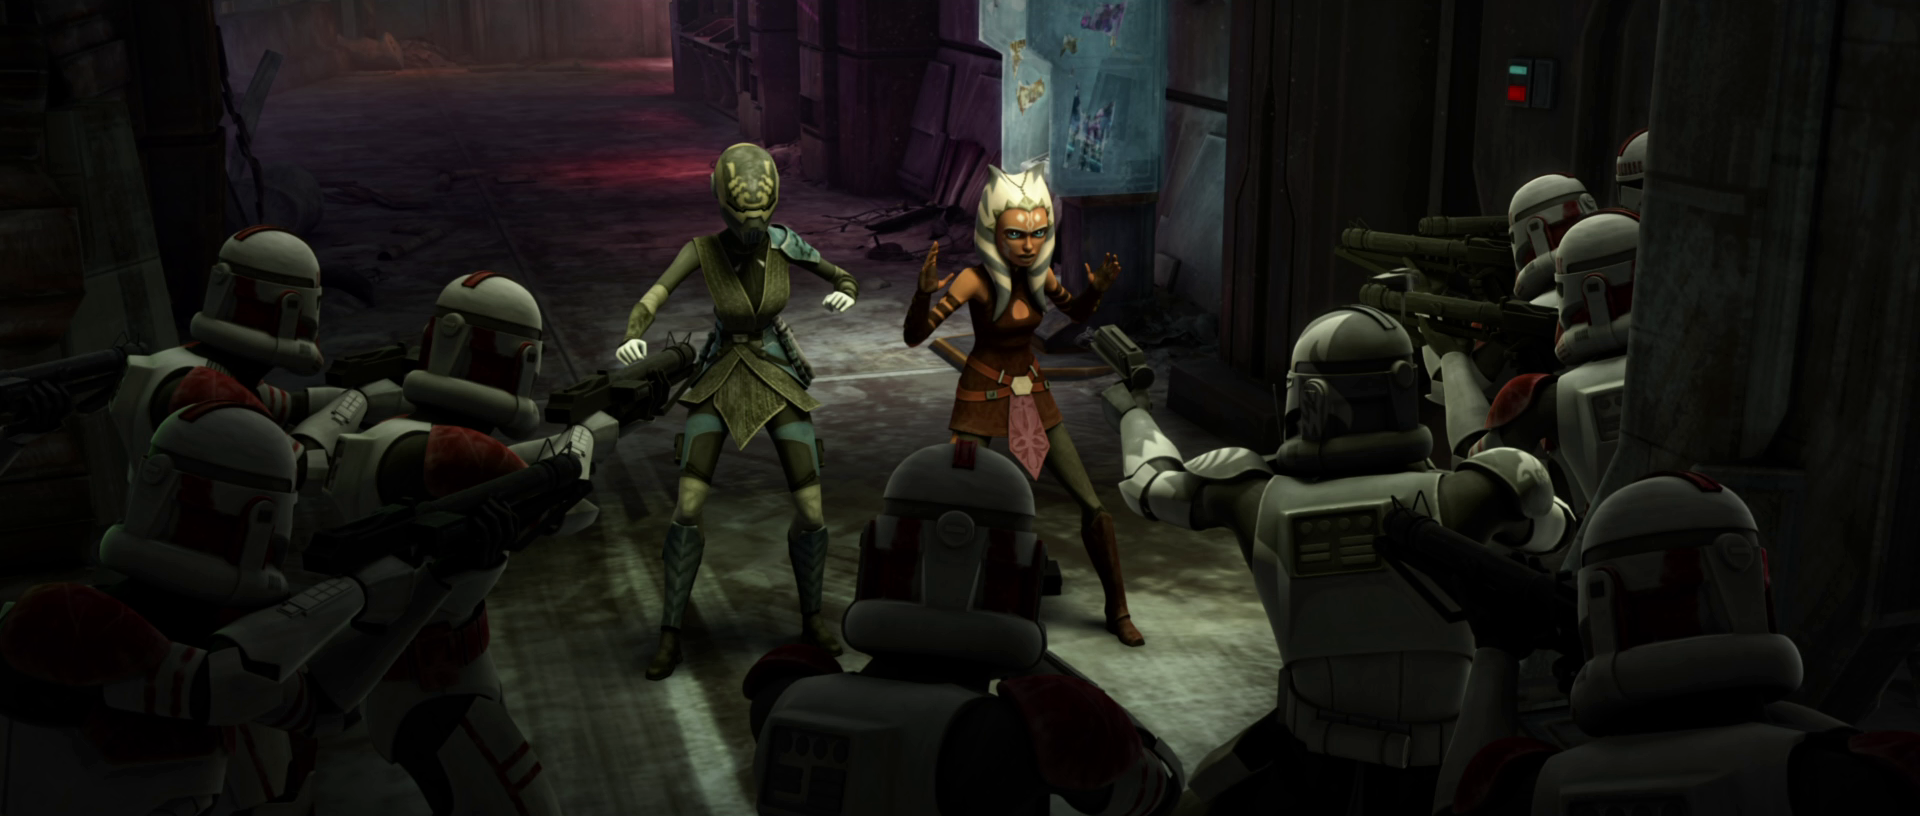 Capture of Ahsoka Tano